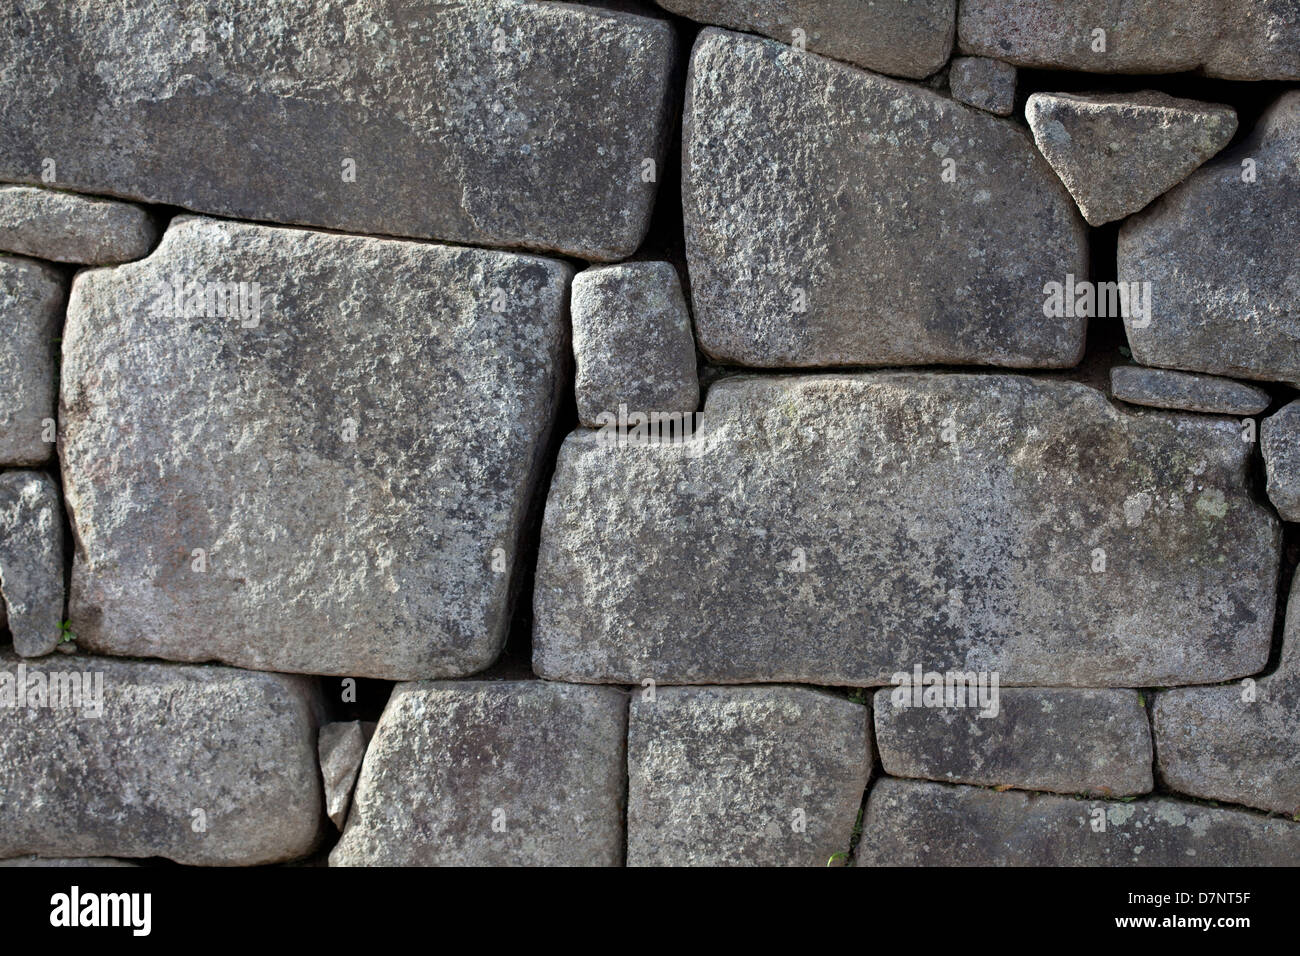 Stone Masonry Precision  at the Archaeological site of the Inca city of Machu Picchu - Stock Image